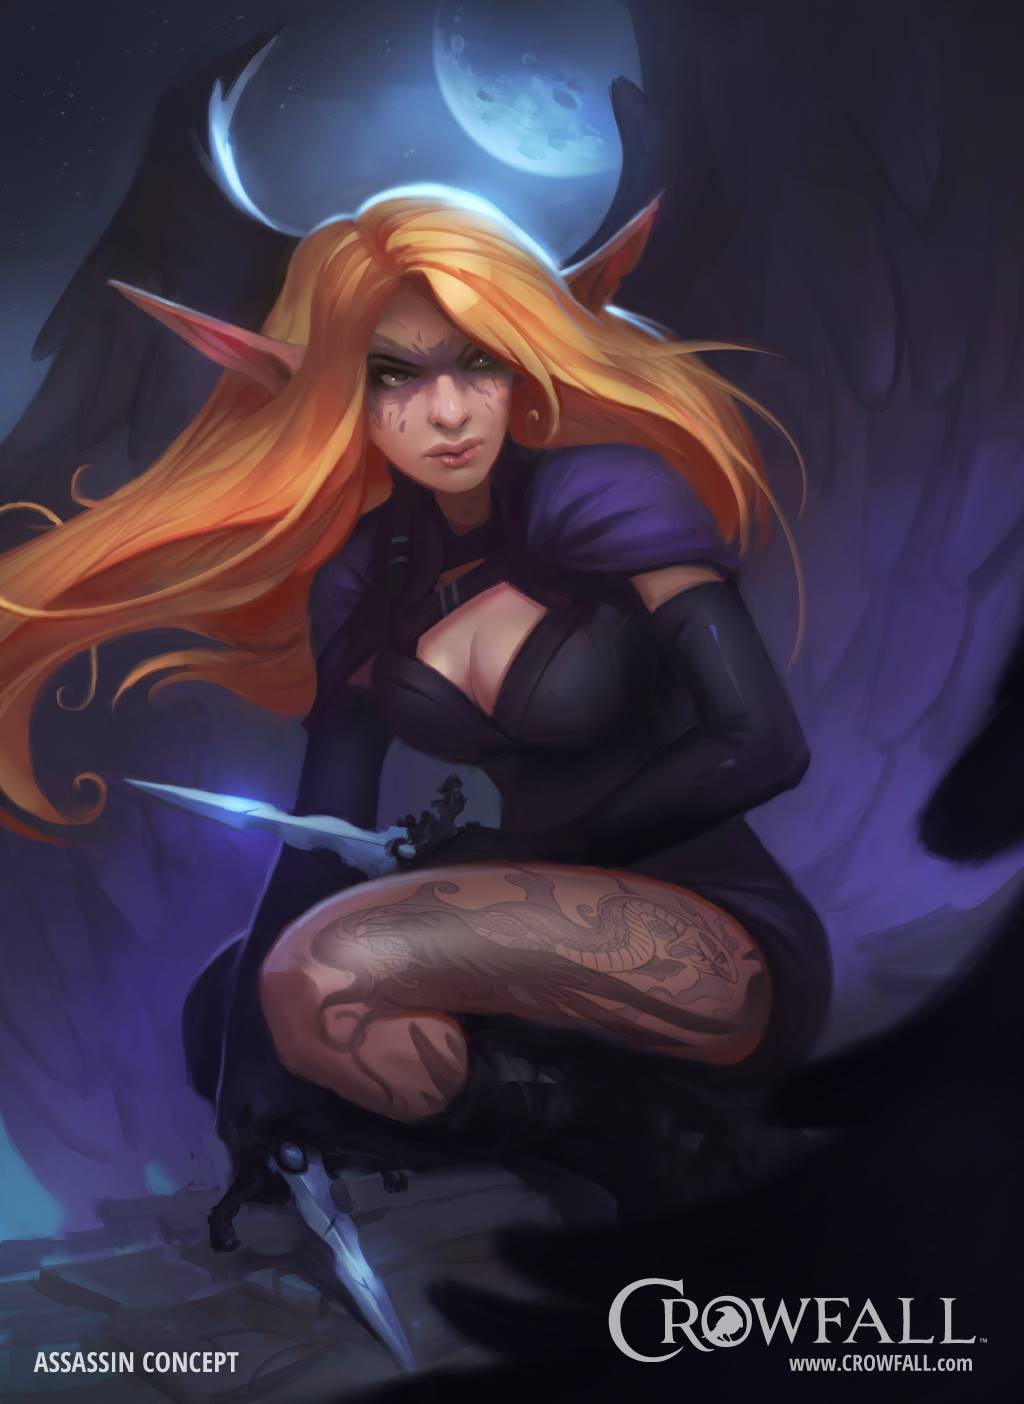 Crowfall Concept Art By Dave Greco Concept Art World